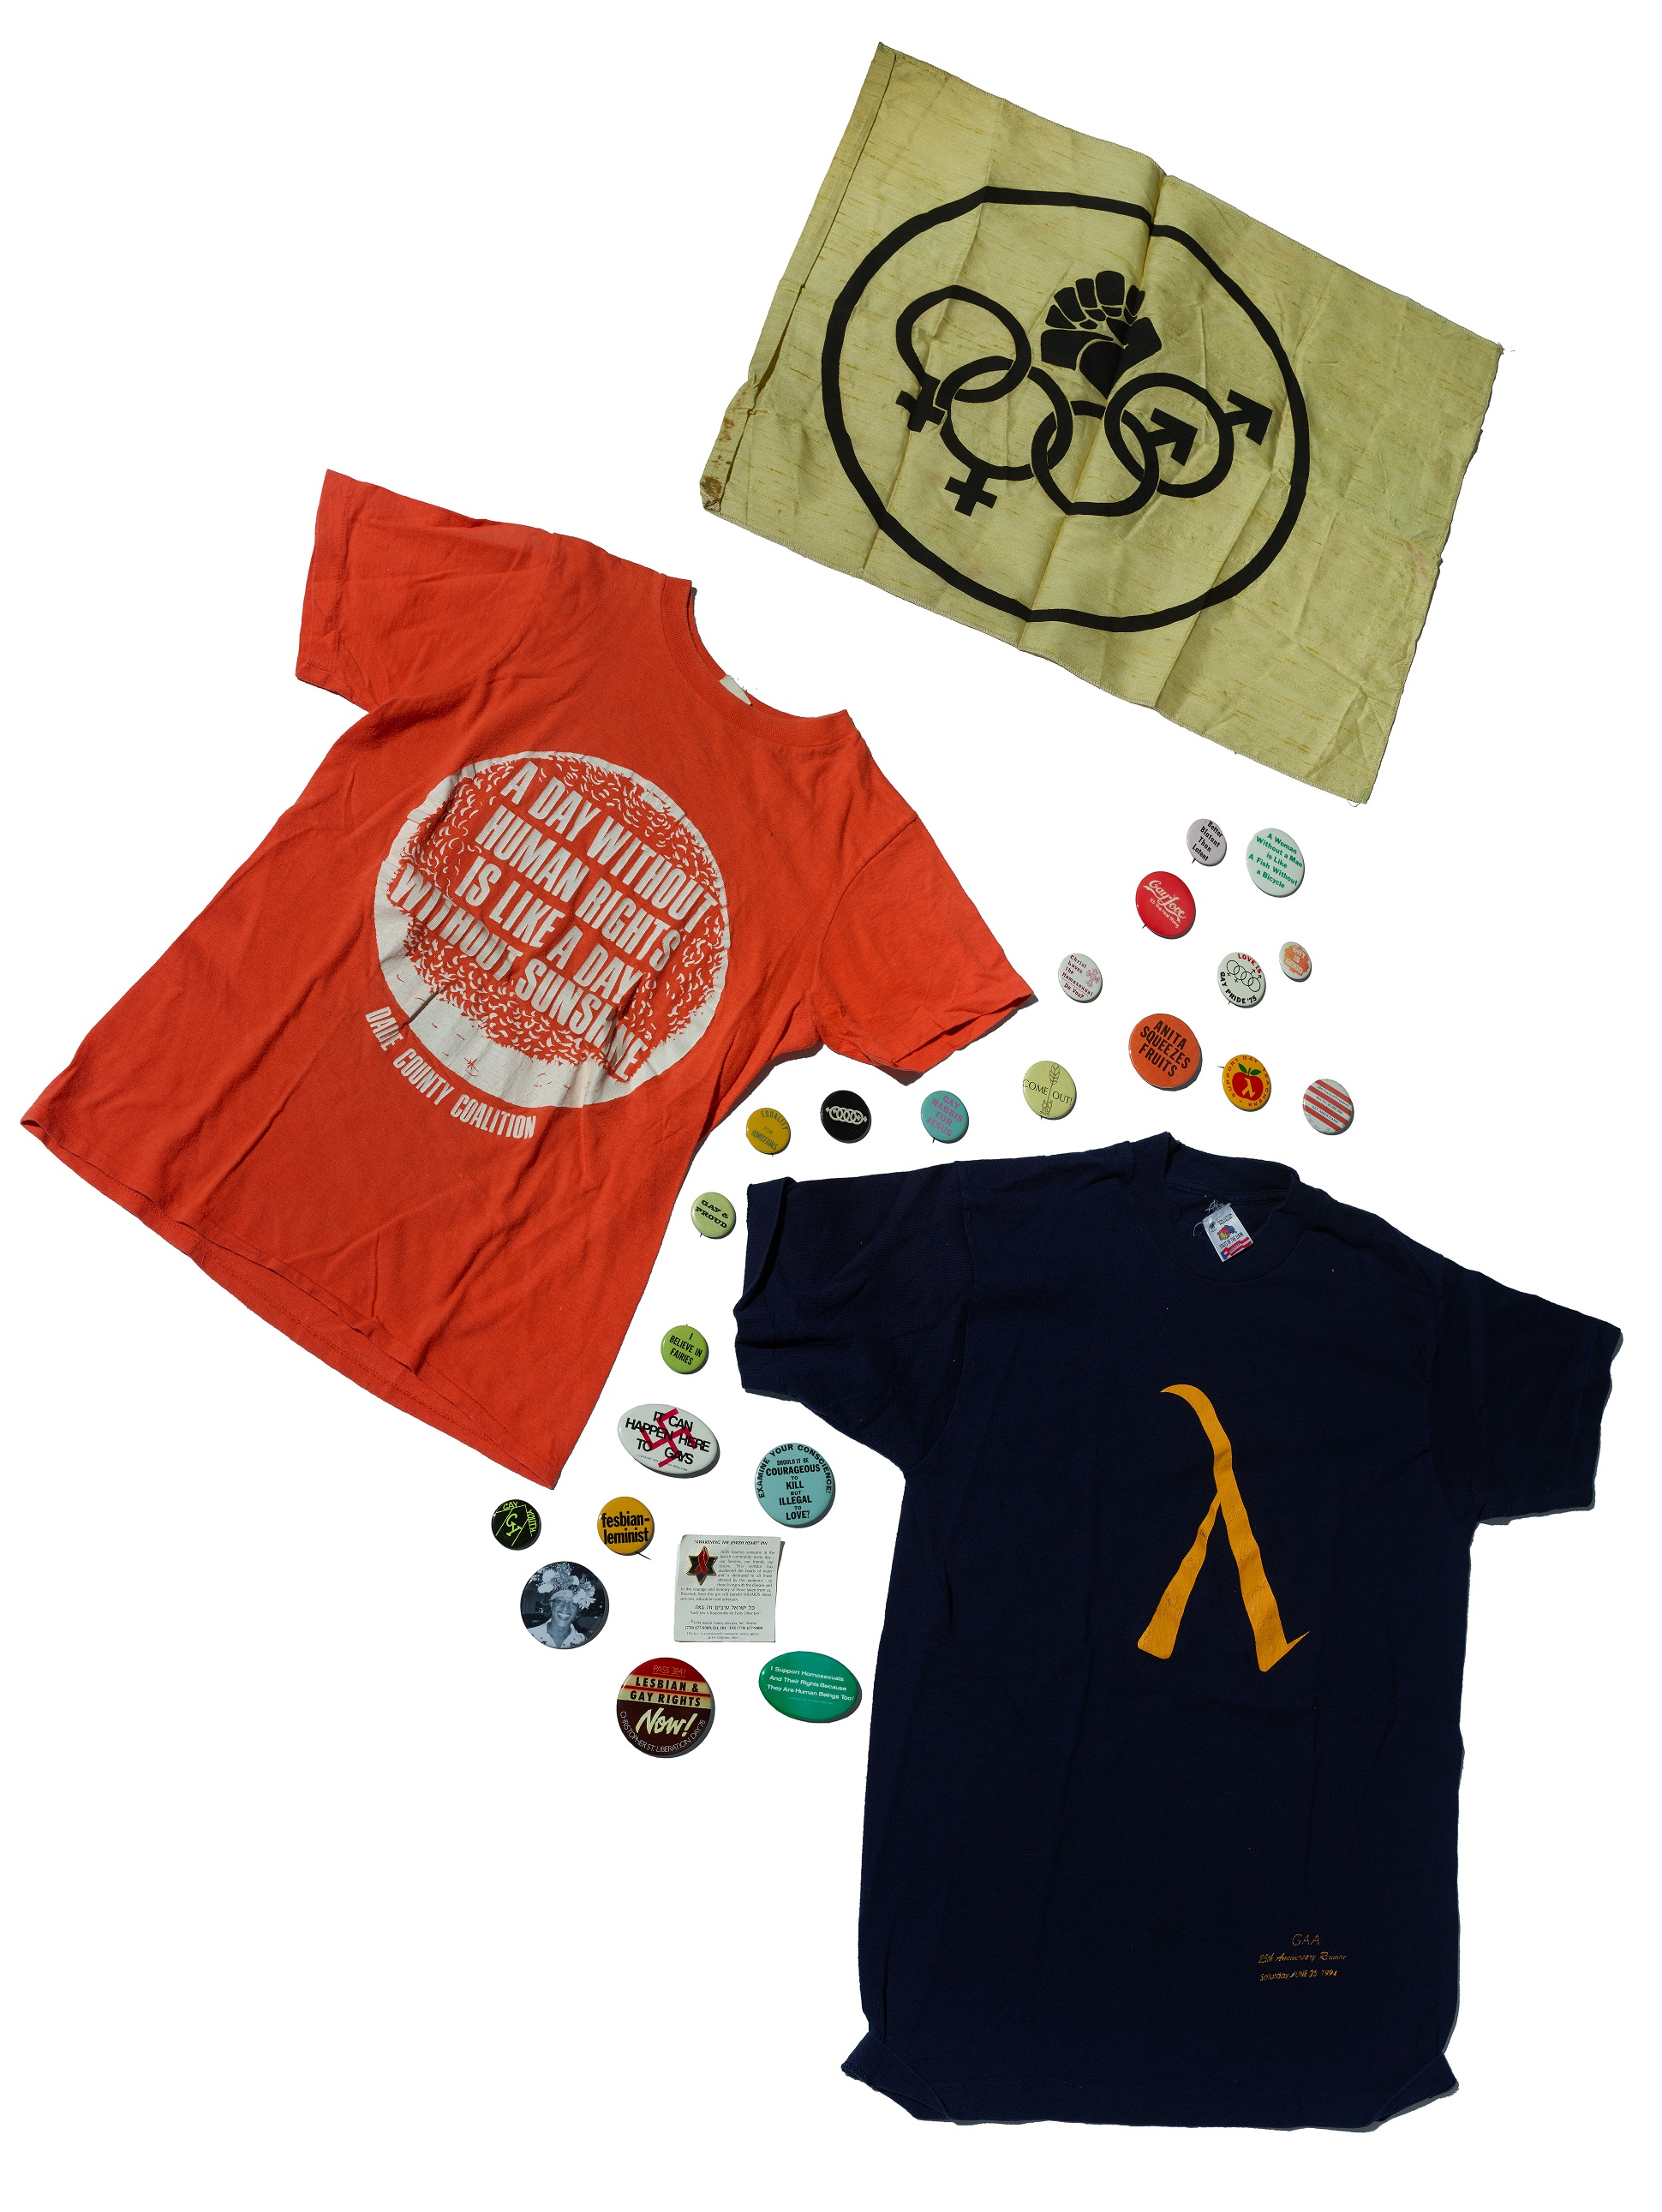 An array of tshirts and pin back buttons lies on a white background